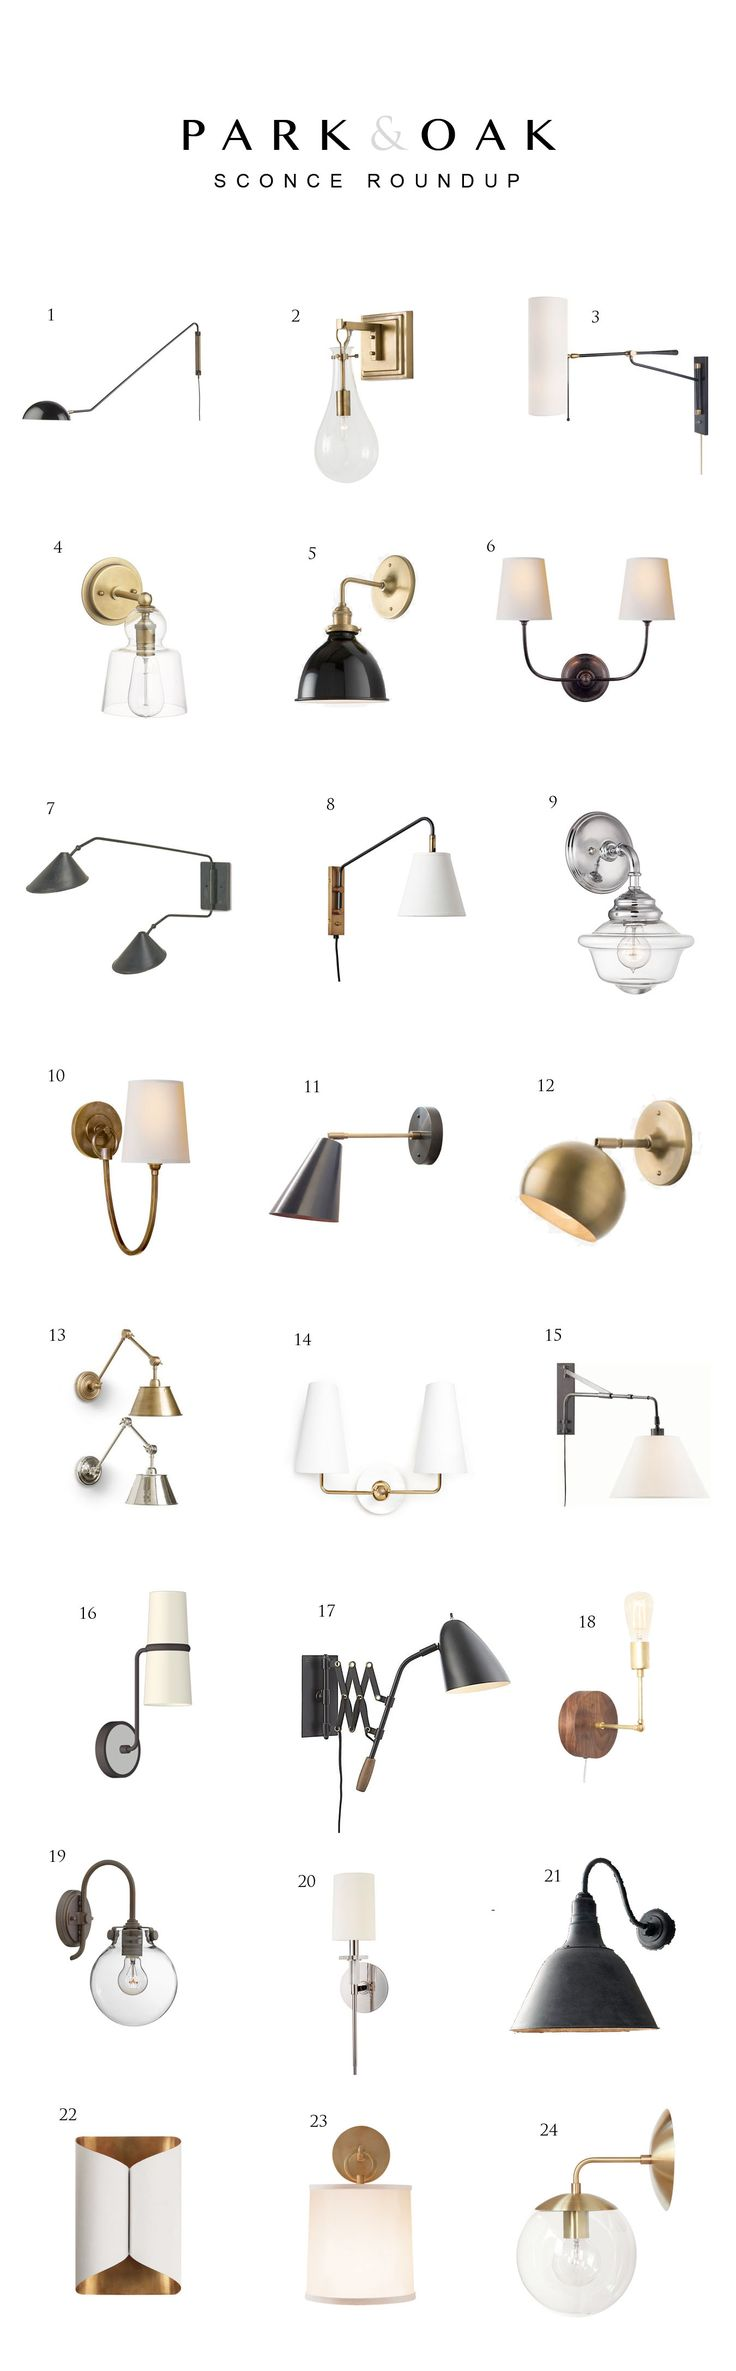 we like 24 and 4....Park and Oak sconce roundup | @siangabari